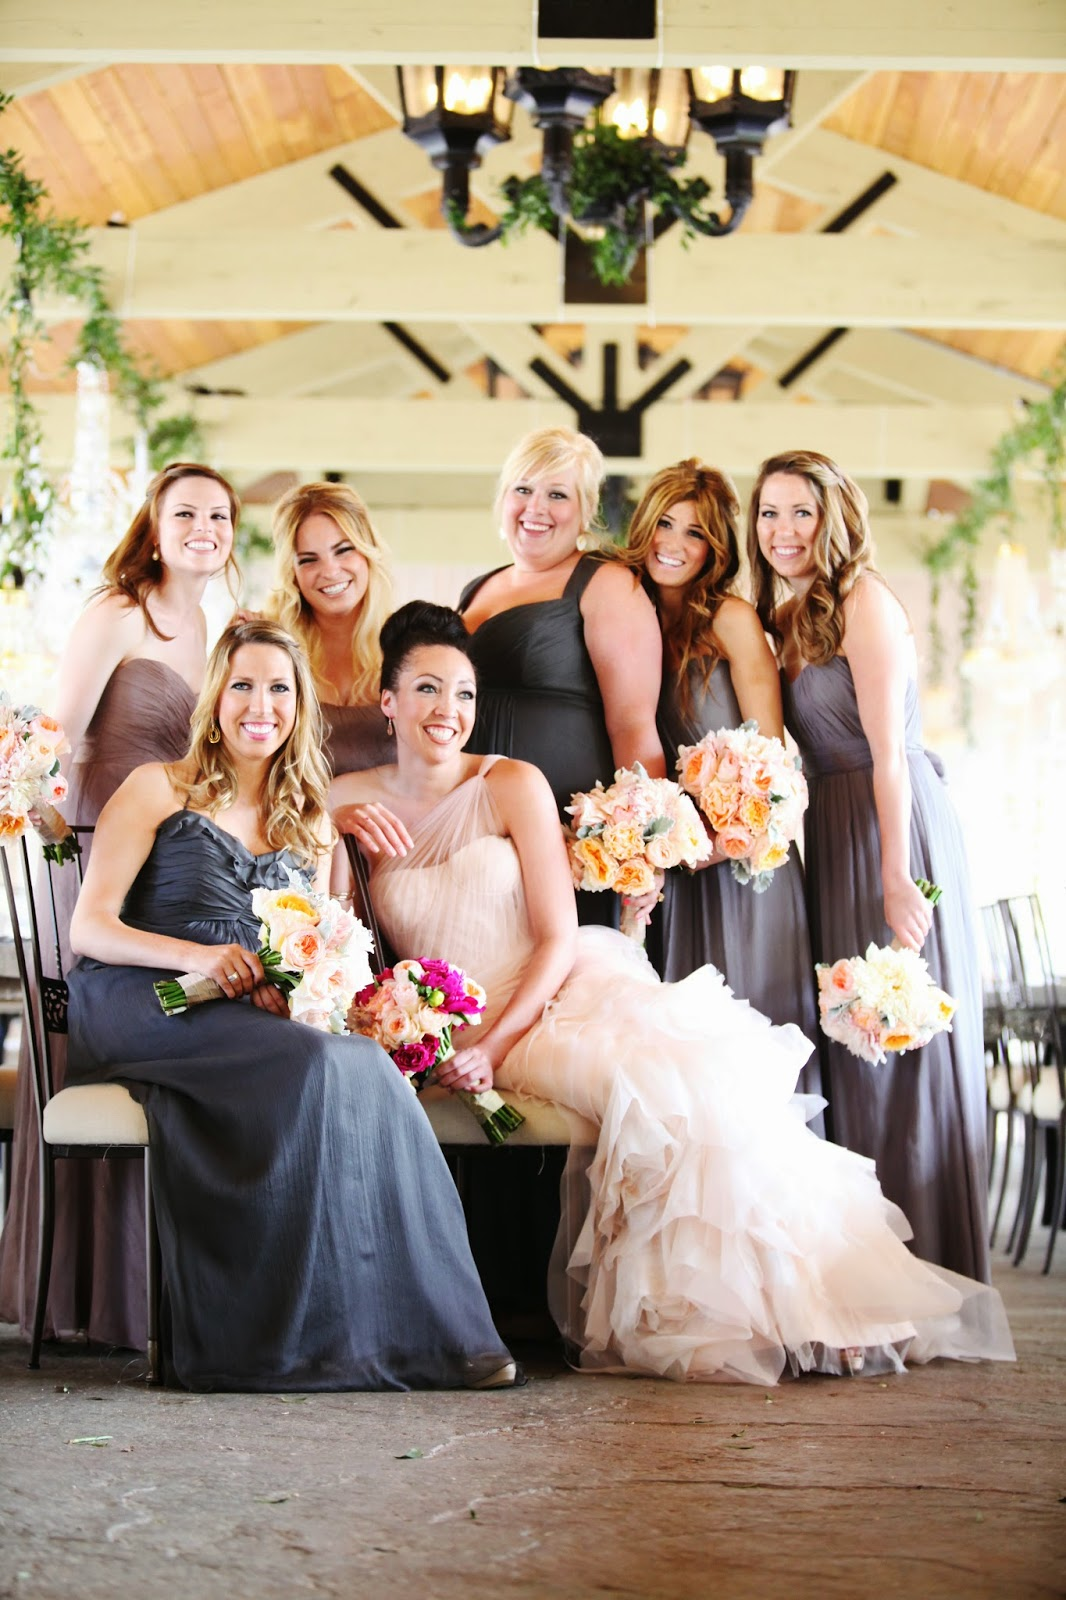 Our Bella Bridesmaids! | Bella Bridesmaids